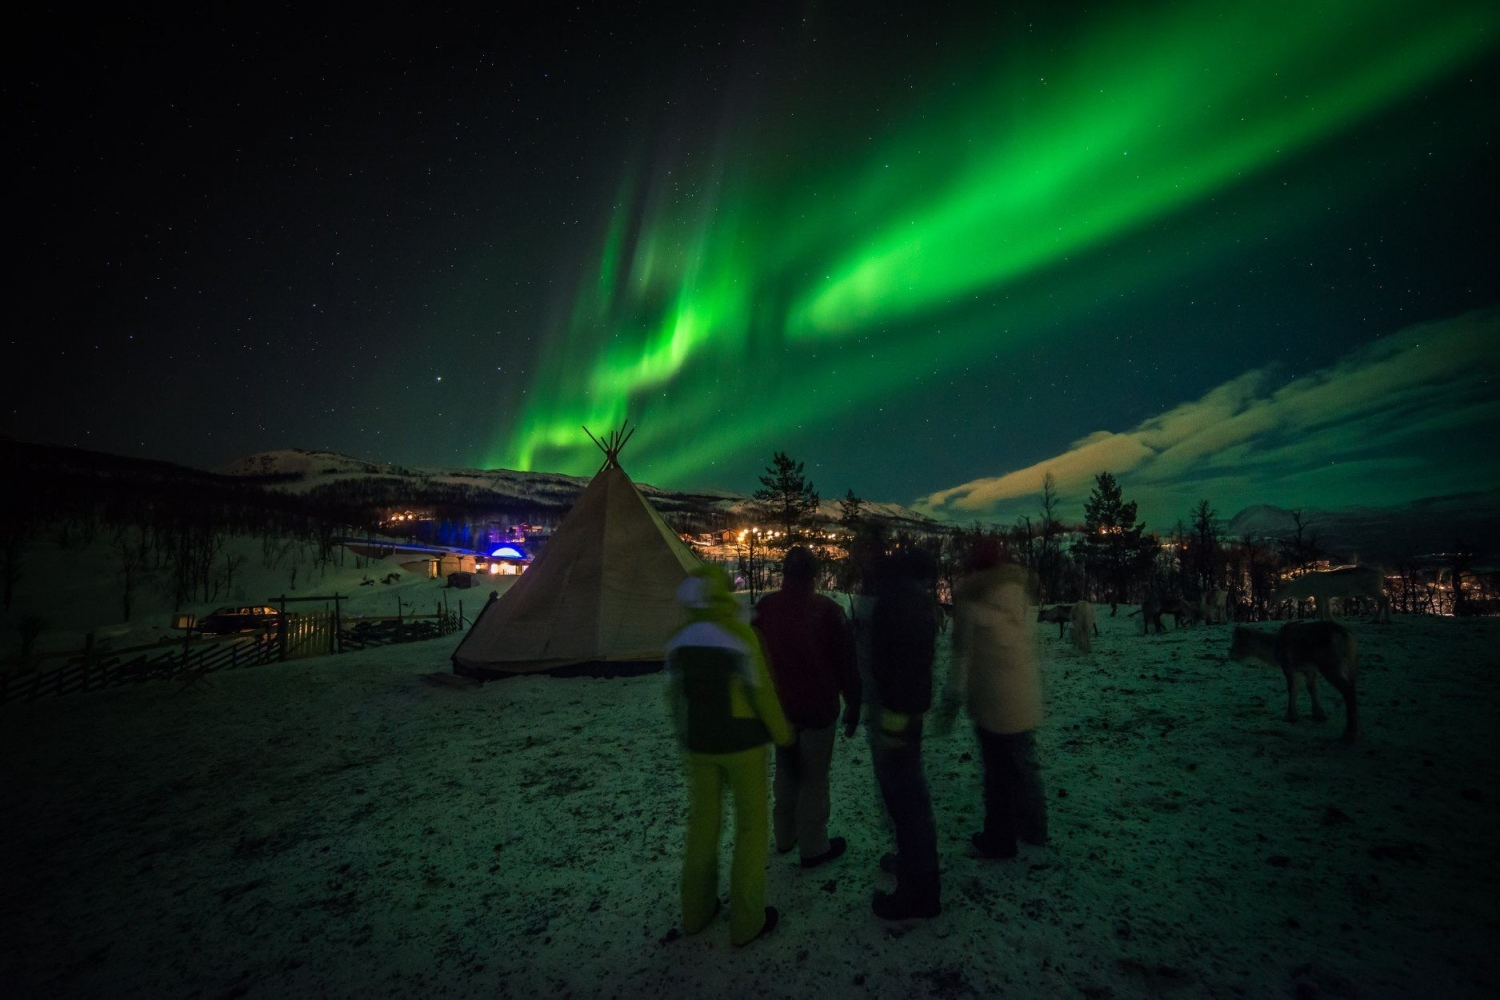 Persons watching the Northern lights, a sami lavvu in the background